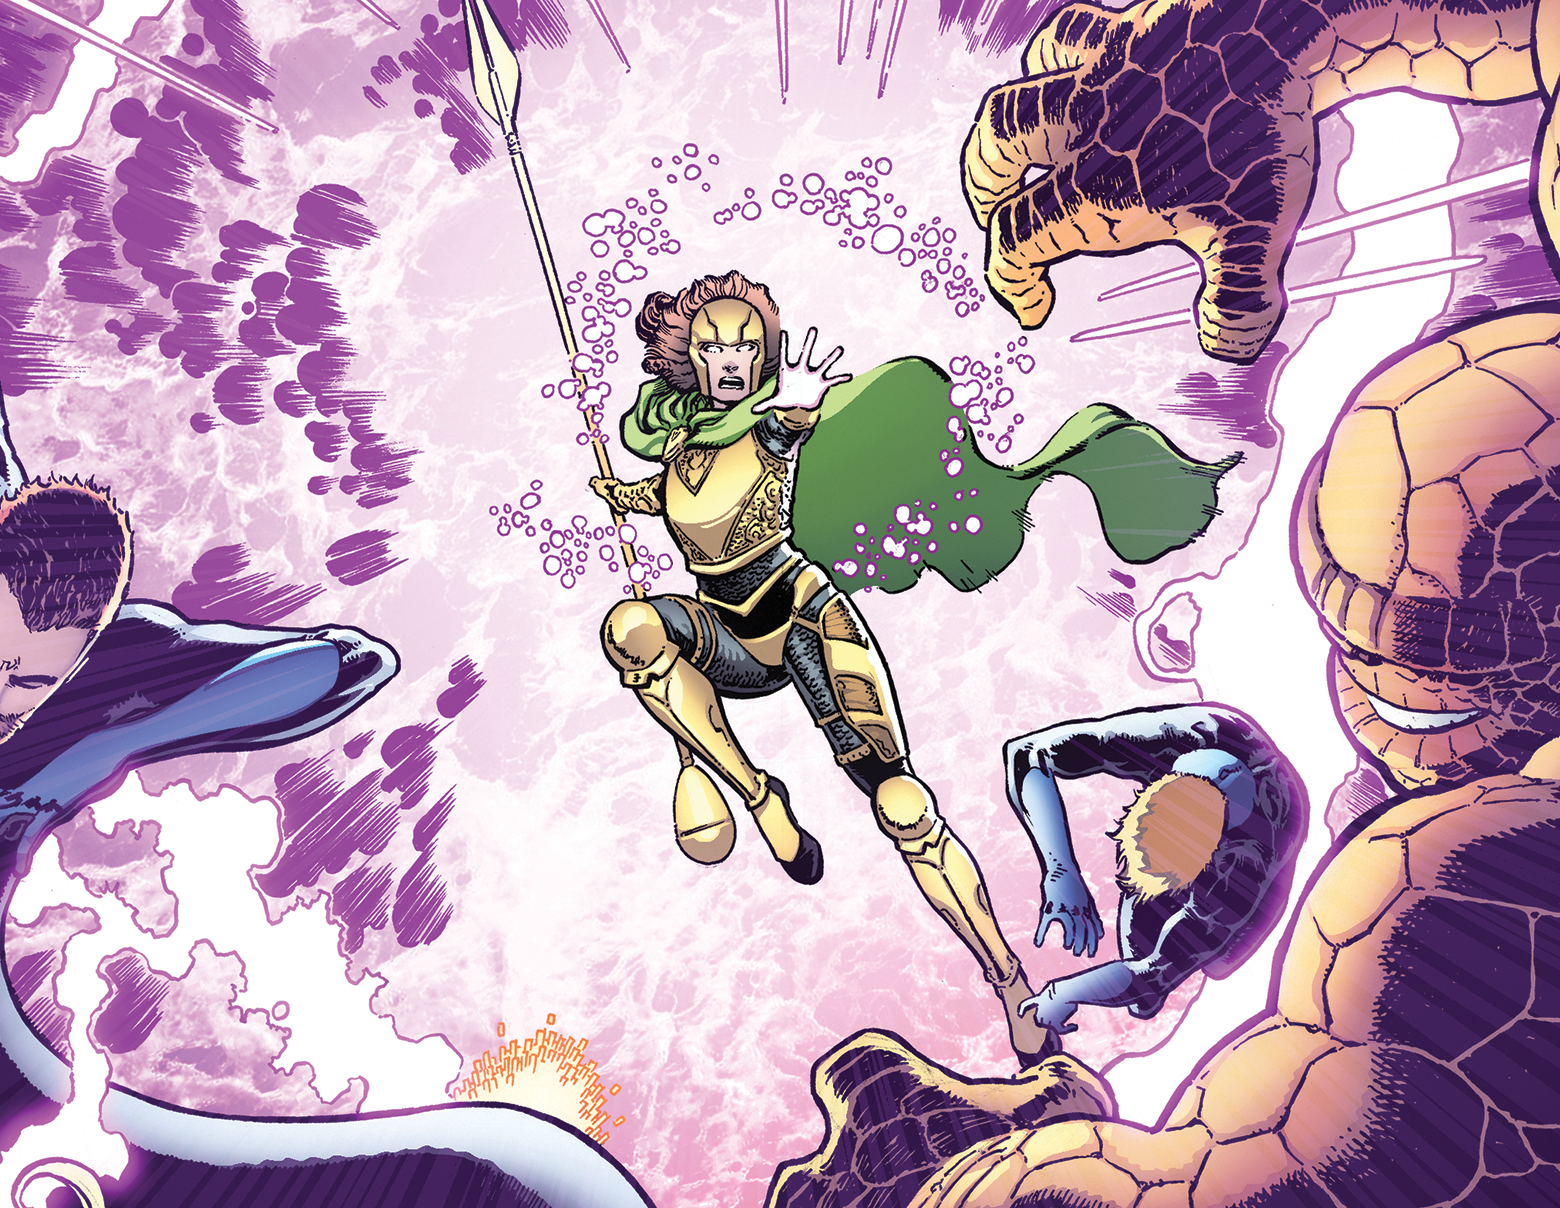 FANTASTIC FOUR #6 Interior art by Aaron Kuder with colors by Marte Gracia & Erick Arciniega